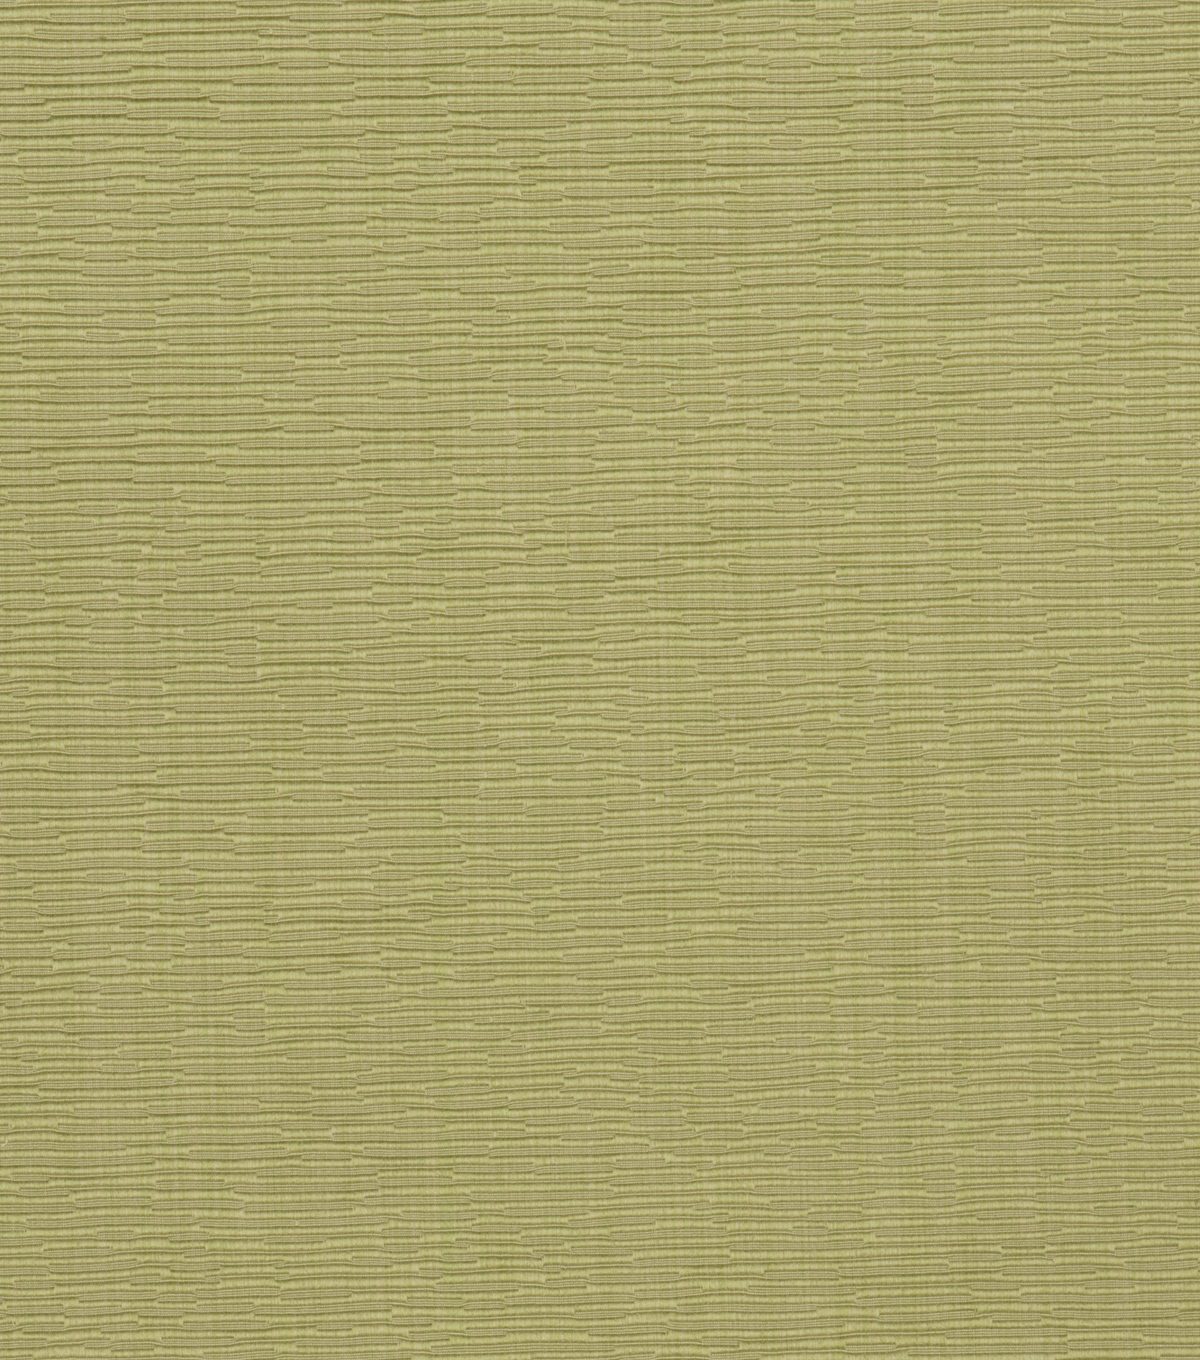 Cabria Green Apple Swatch